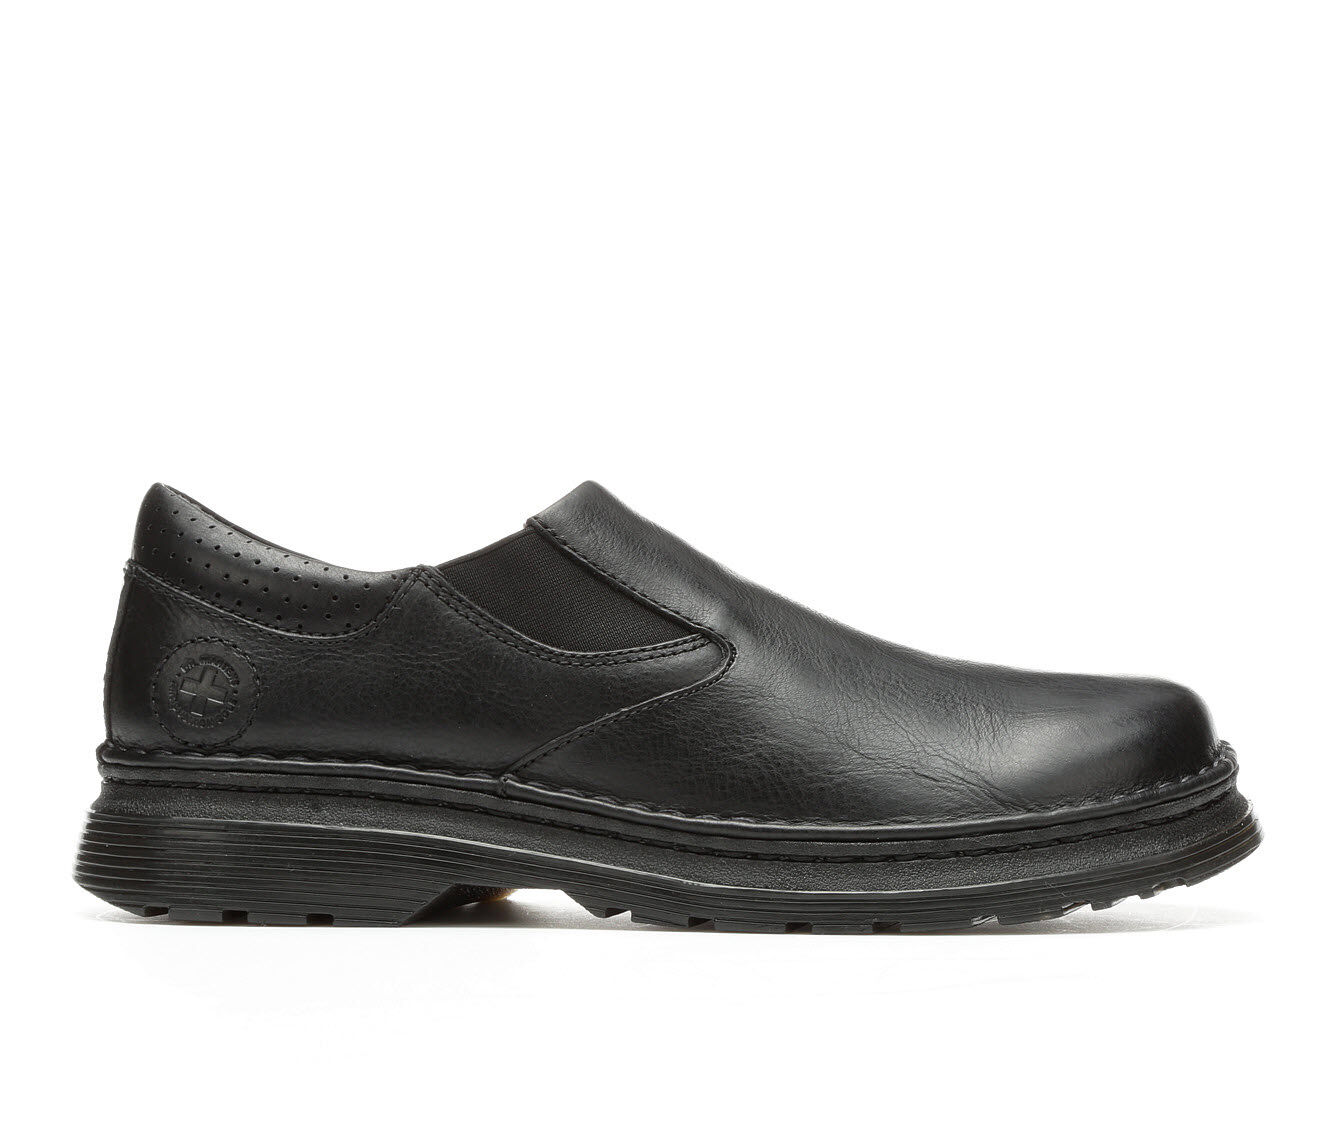 summer styles Men's Dr. Martens Orson Slip On Plain Toe Loafers Black